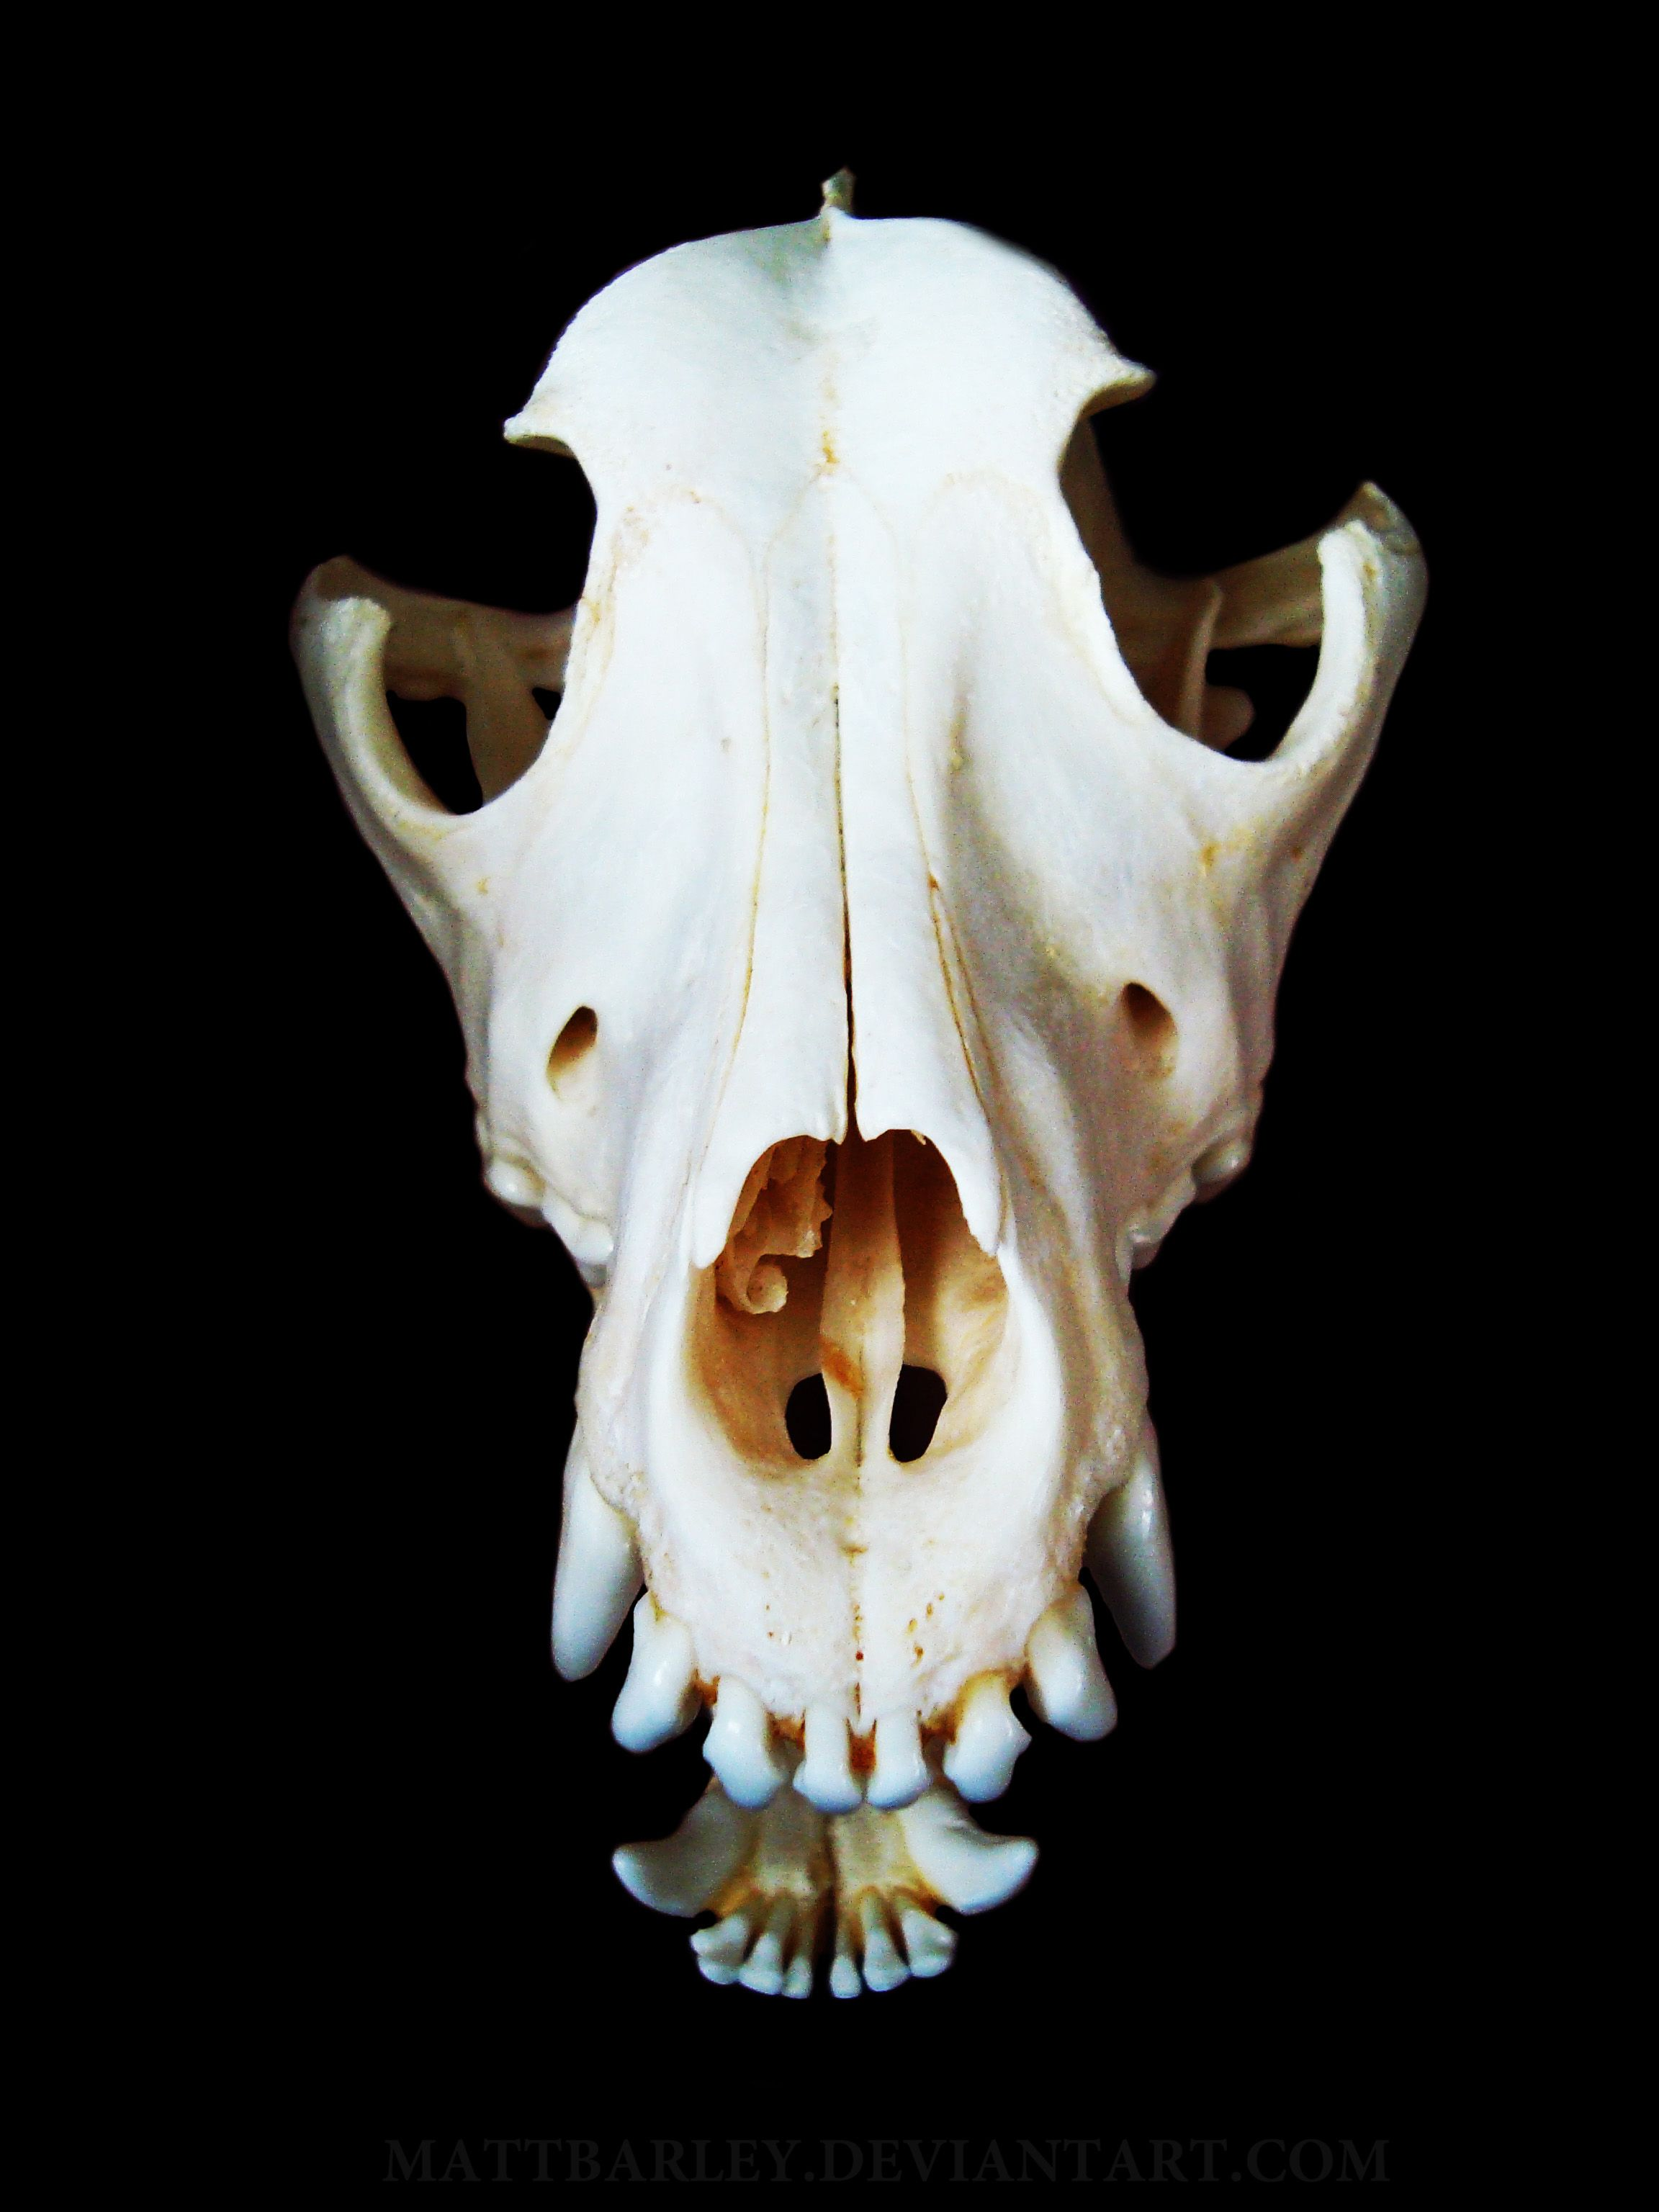 hight resolution of dog skull front view